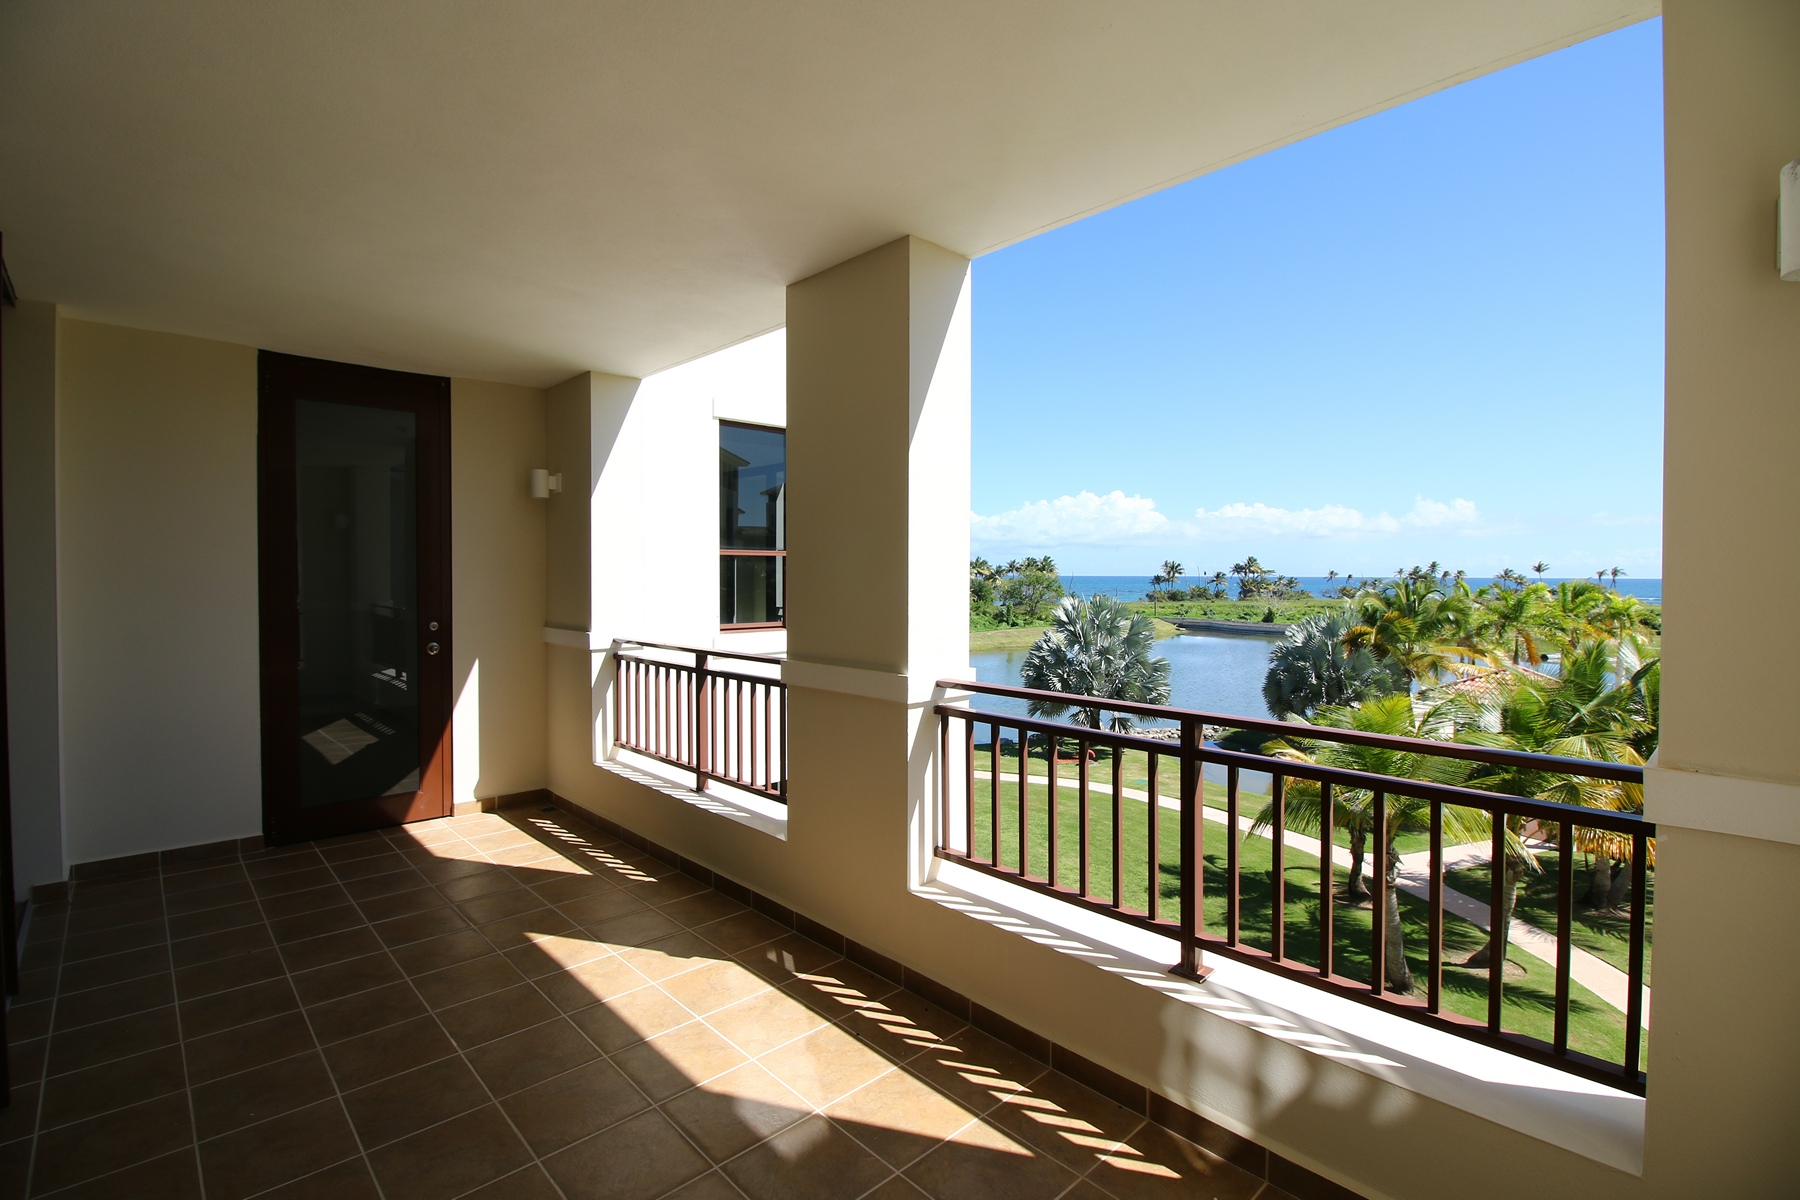 Additional photo for property listing at Residence 221 at 238 Candelero Drive 238 Candelero Drive, Apt 221 Solarea Beach Resort and Yacht Club Palmas Del Mar, Puerto Rico 00791 Πουερτο Ρικο